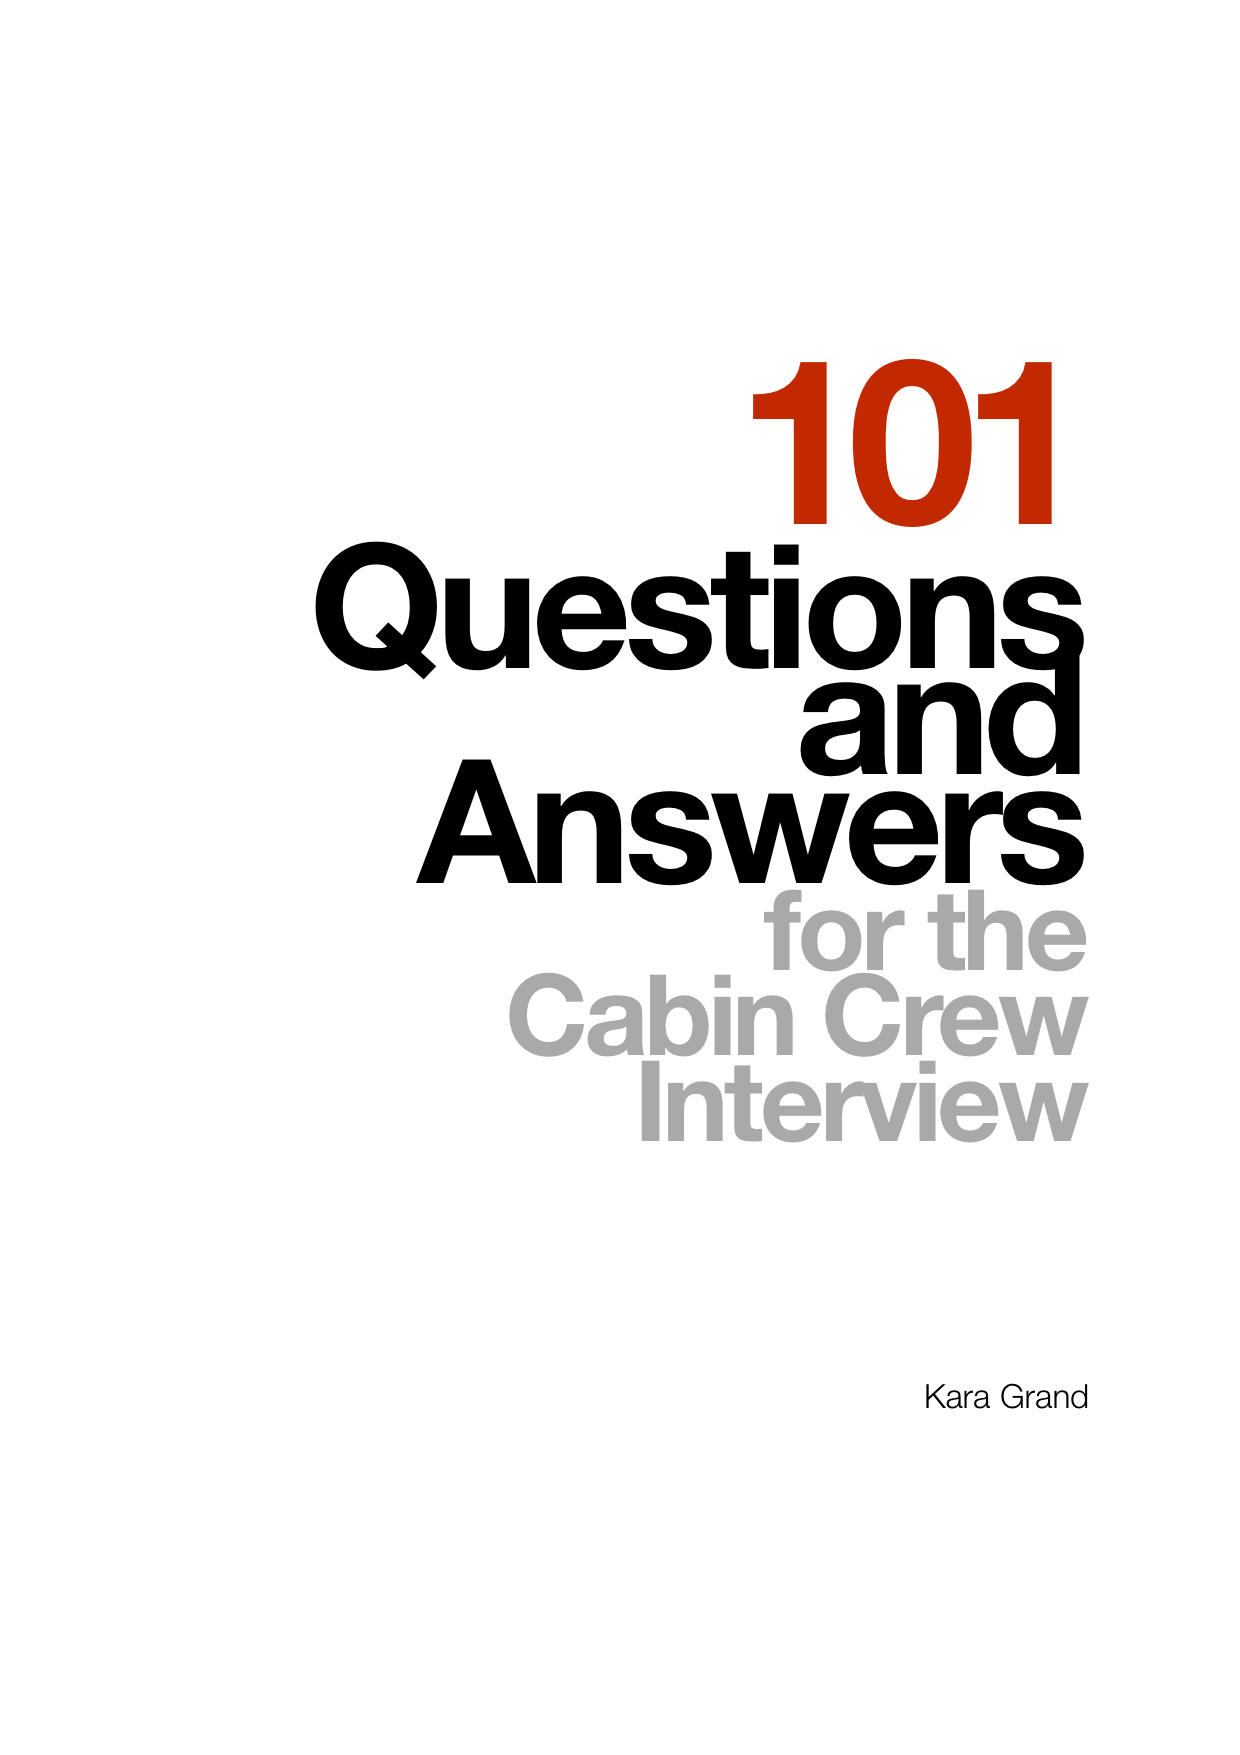 25 questions and answers for the cabin crew interview 101qa cover